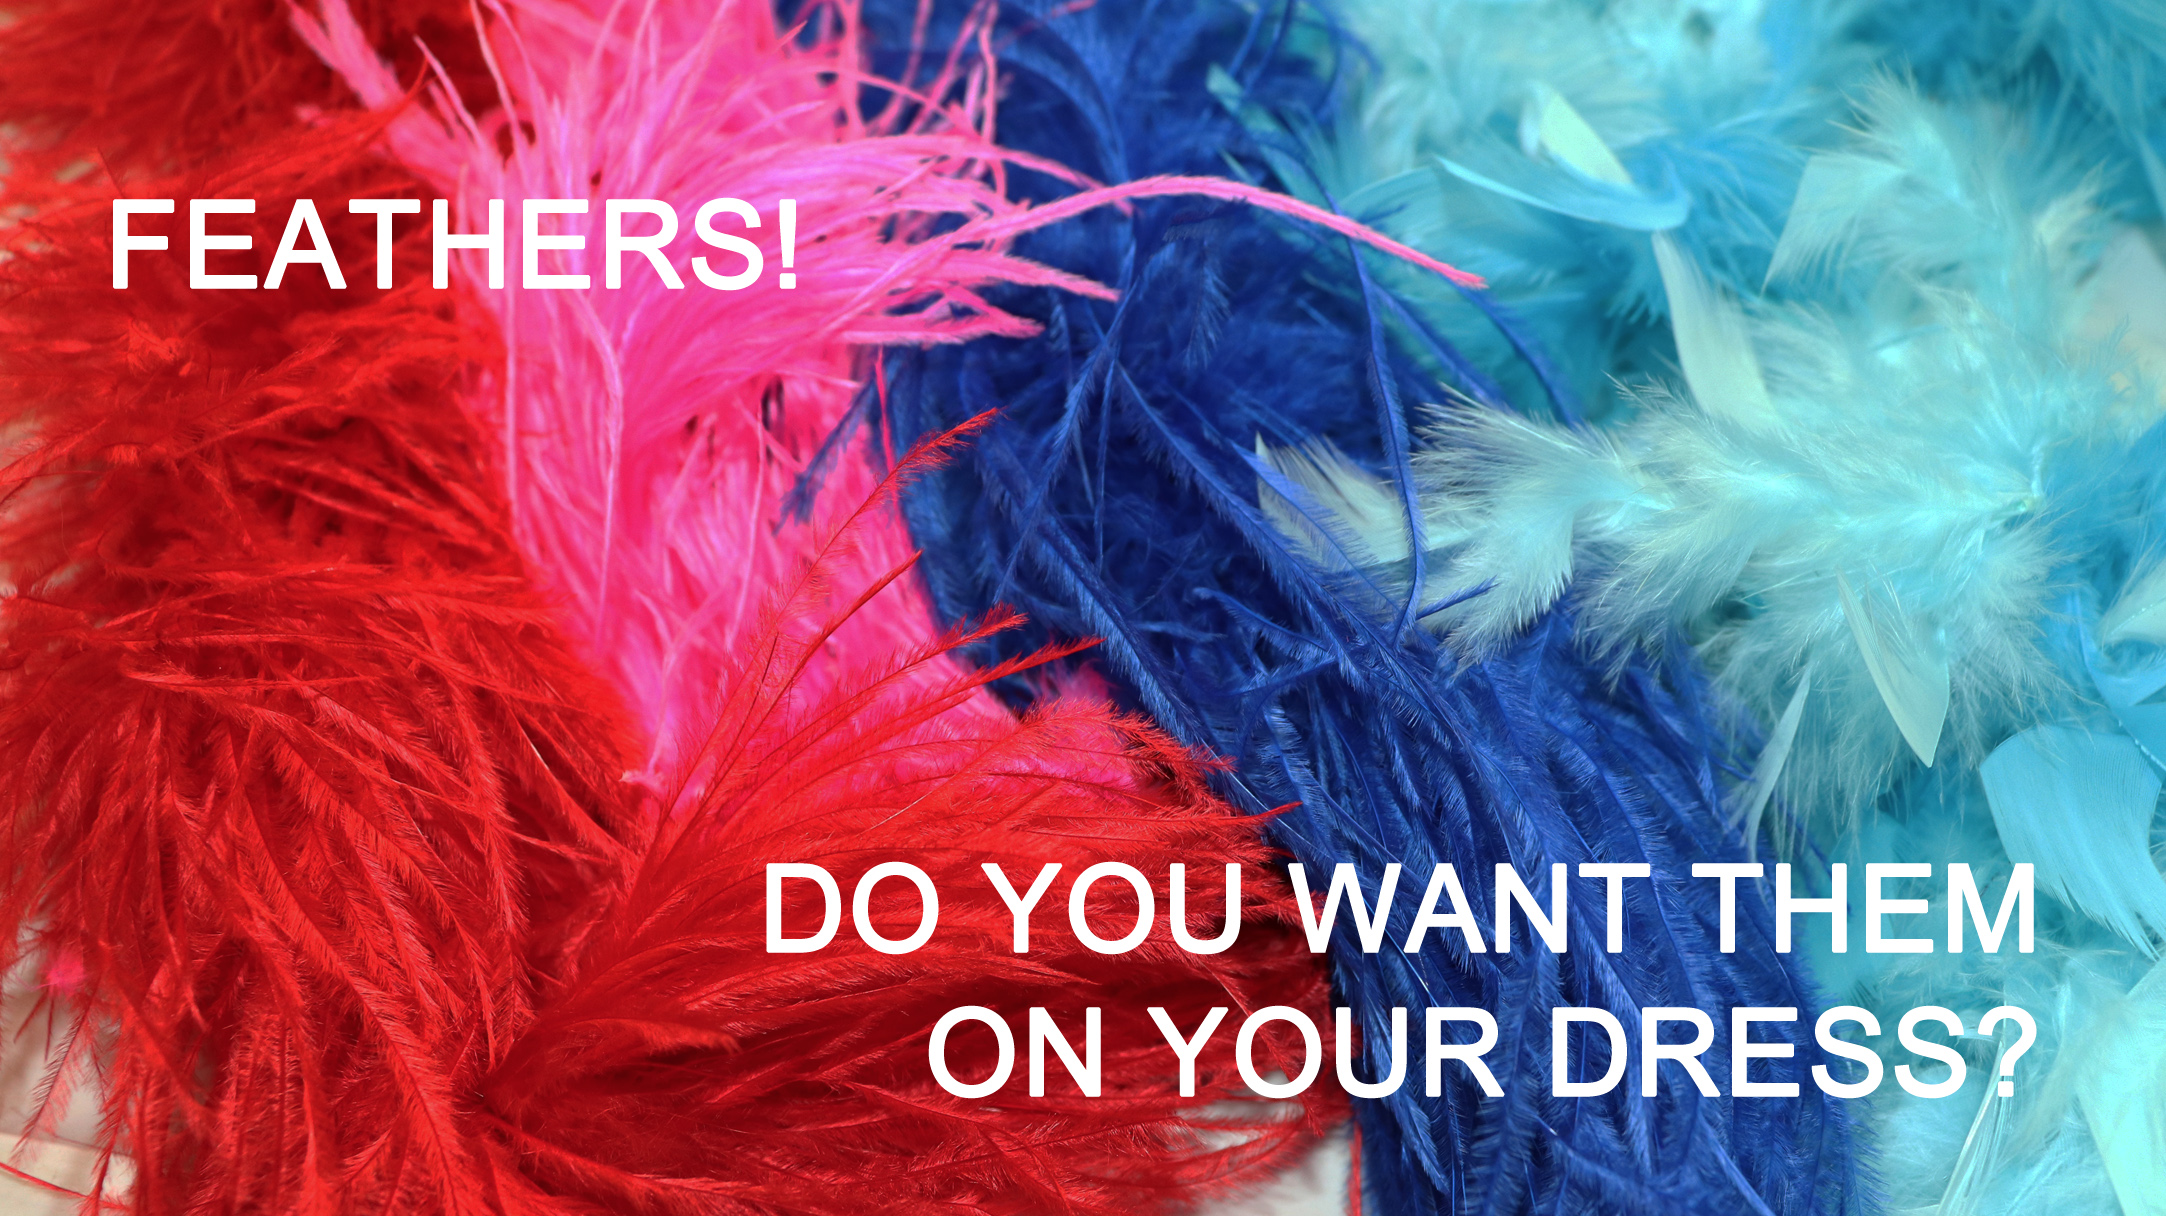 Feathers Are Trending. Do You Want Them On Your Dress?